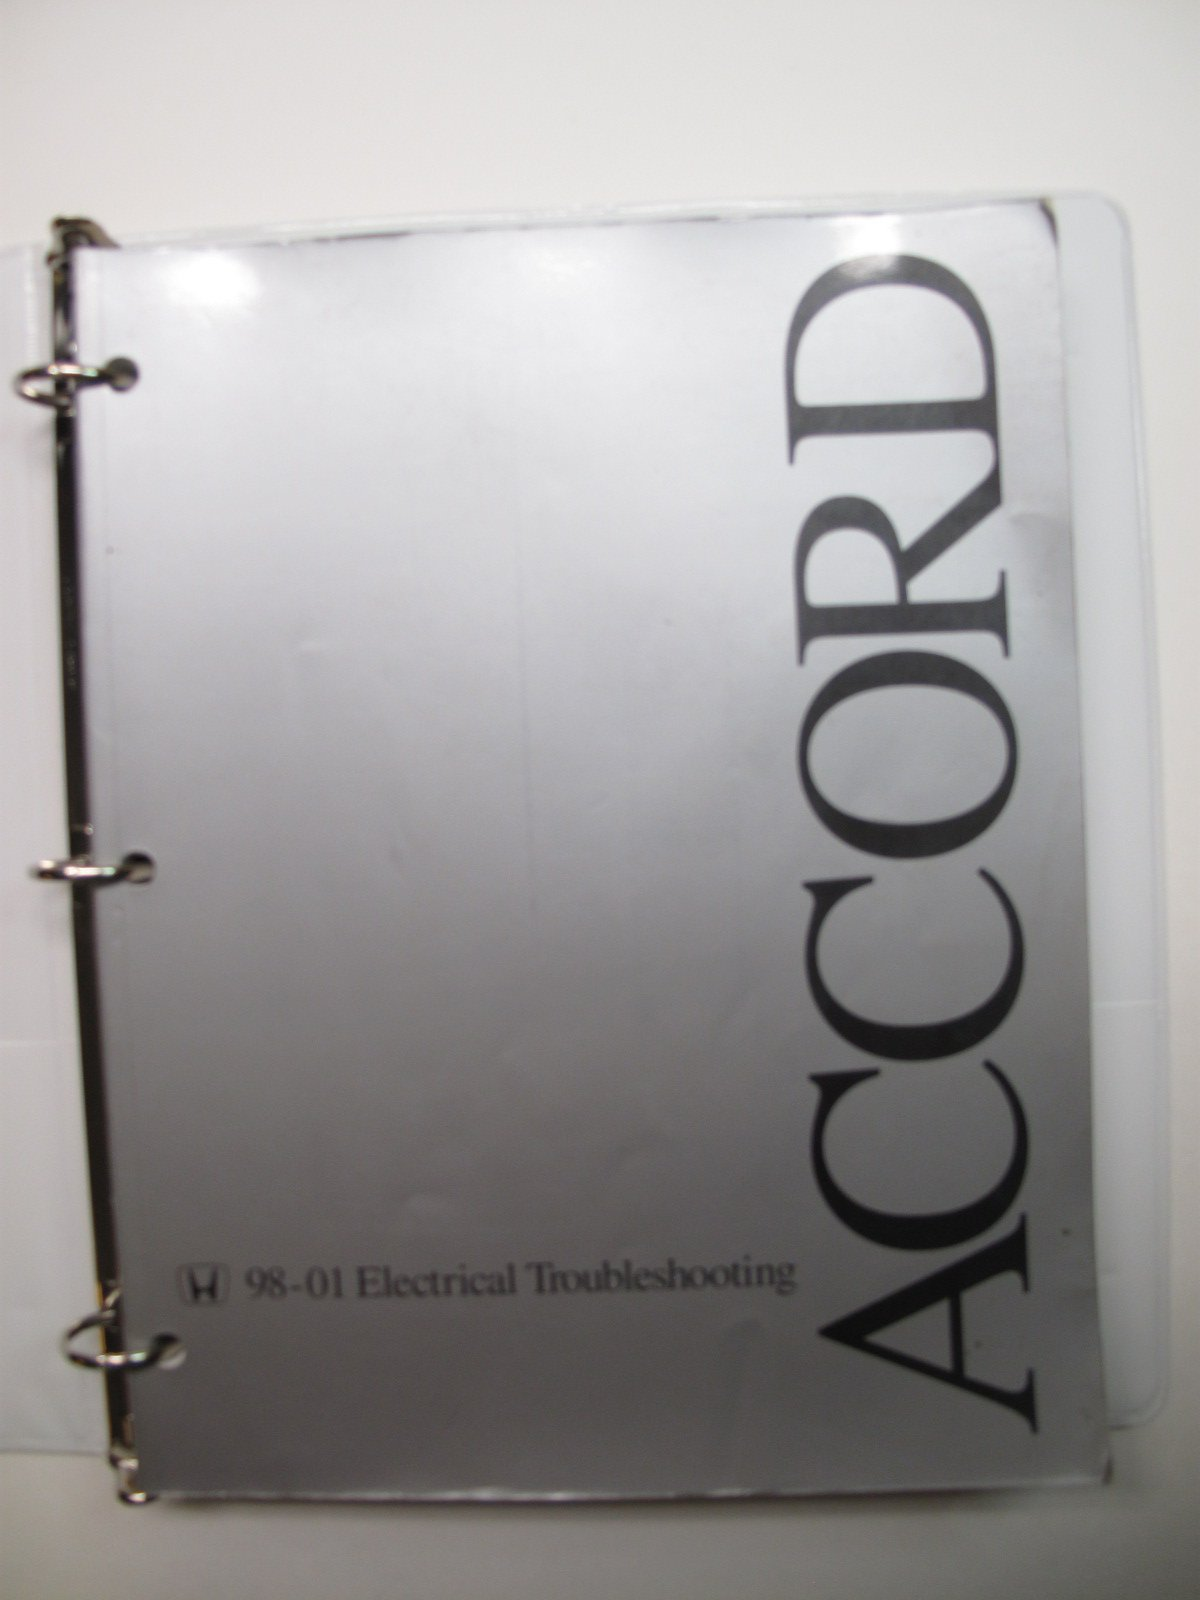 Honda Accord 1998 1999 2000 2001 Electrical Troubleshooting Wiring Service  Manual Paperback